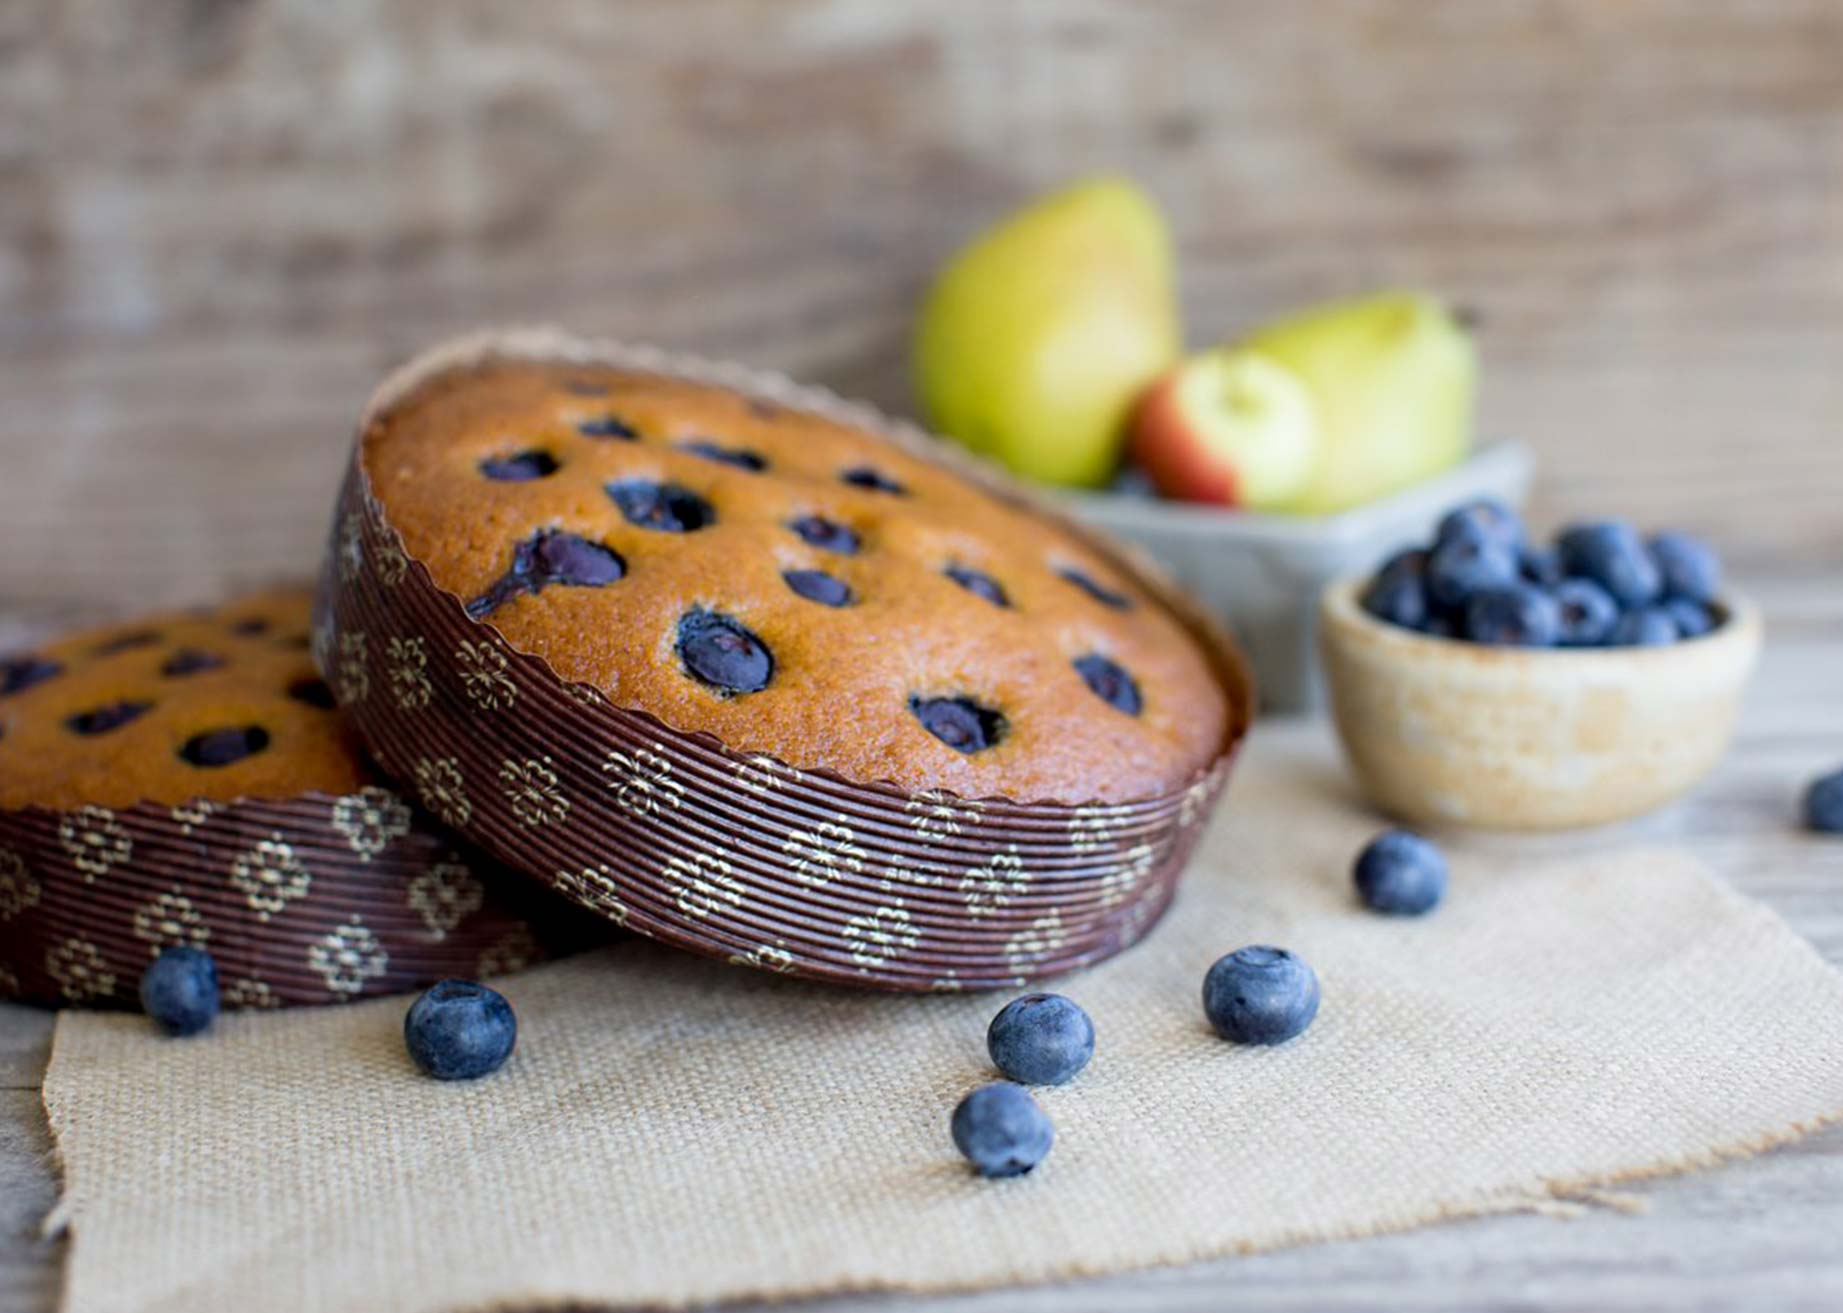 pear and blueberry cakes in novacart MBB baking mold